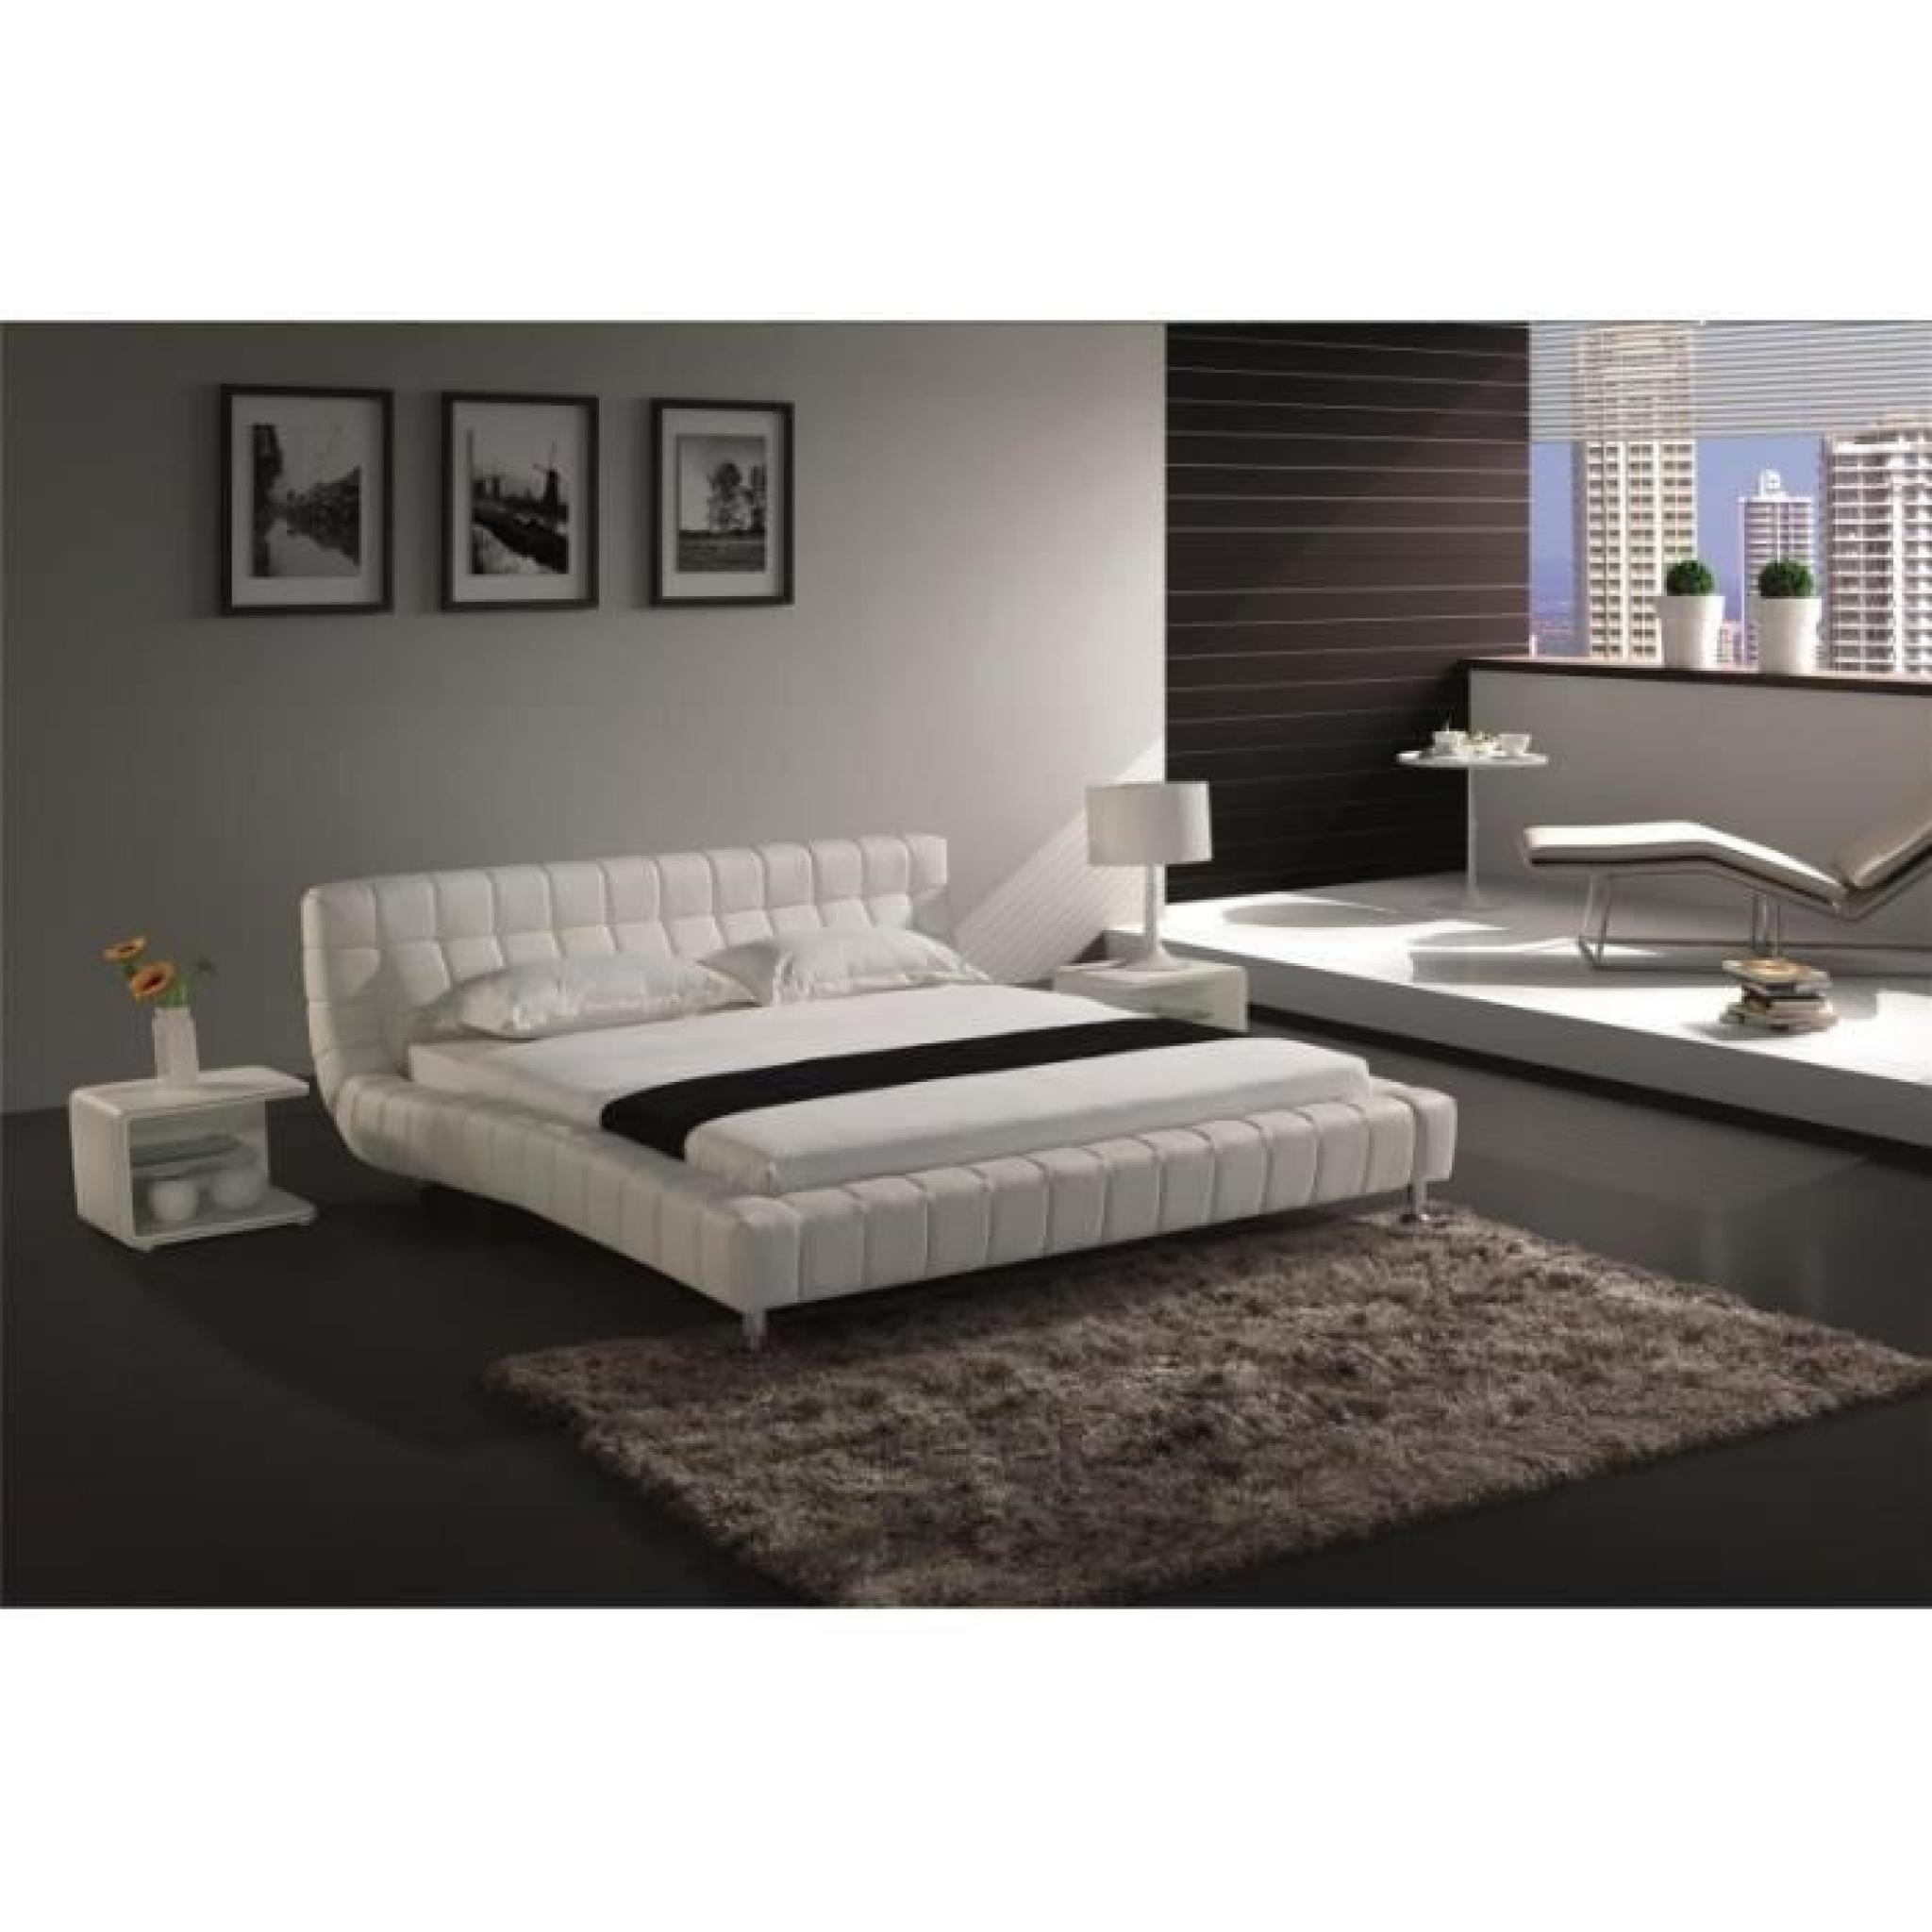 justhome brooklyn blanc lit rembourr en cuir cologique taille 200 x 200 cm achat vente lit. Black Bedroom Furniture Sets. Home Design Ideas